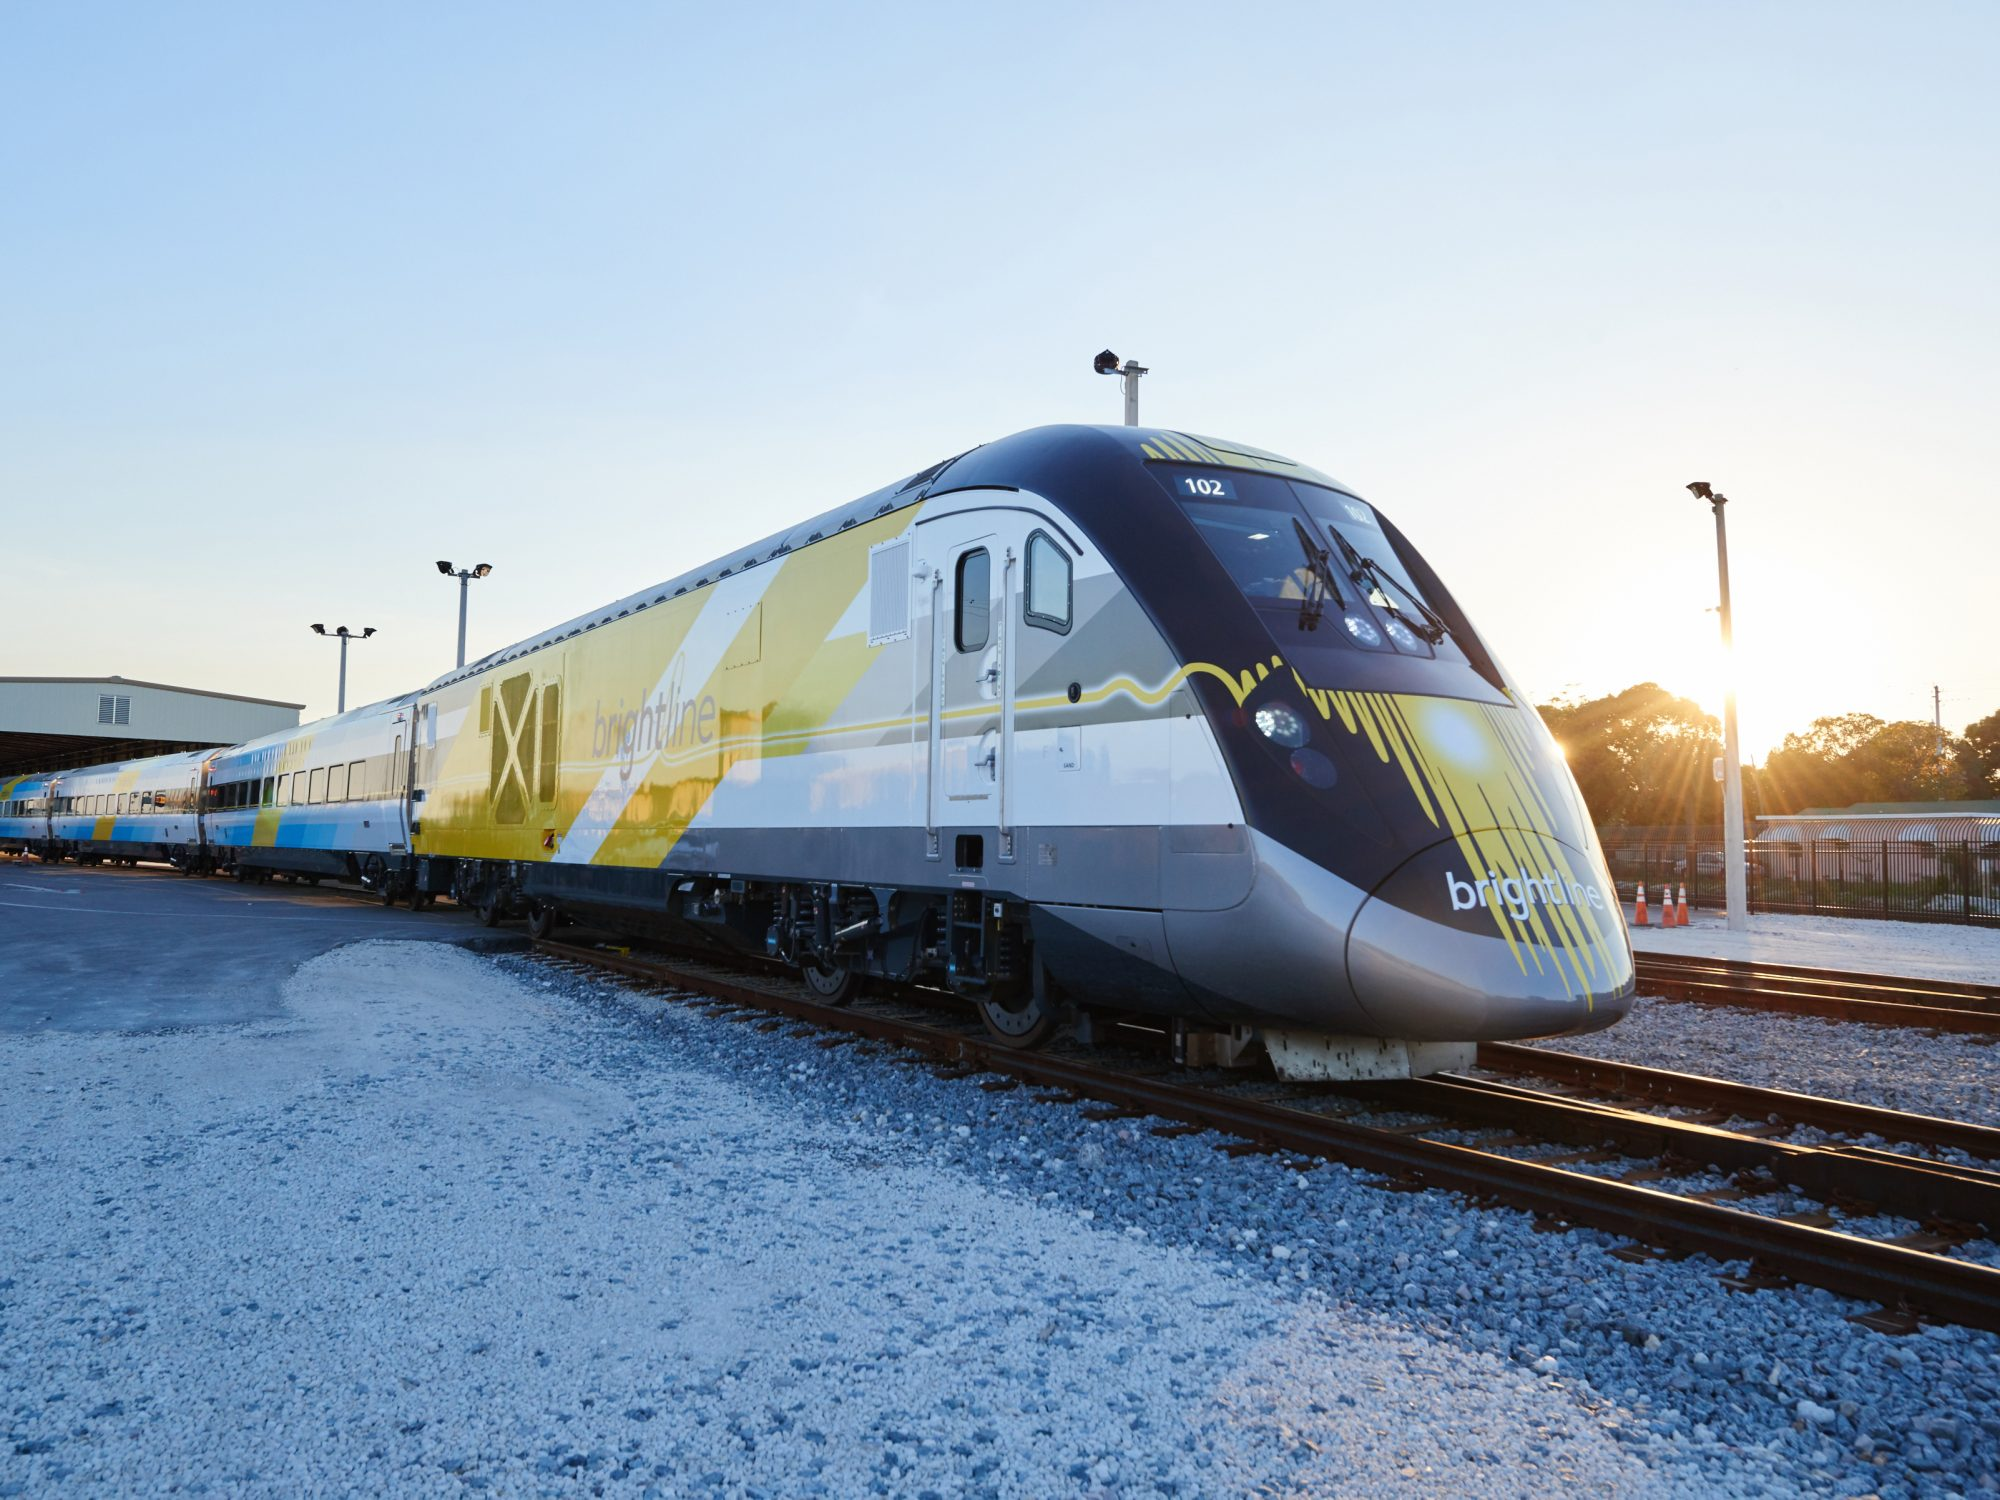 Floridians Rejoice! This Train Is (Finally) Connecting Miami and Orlando